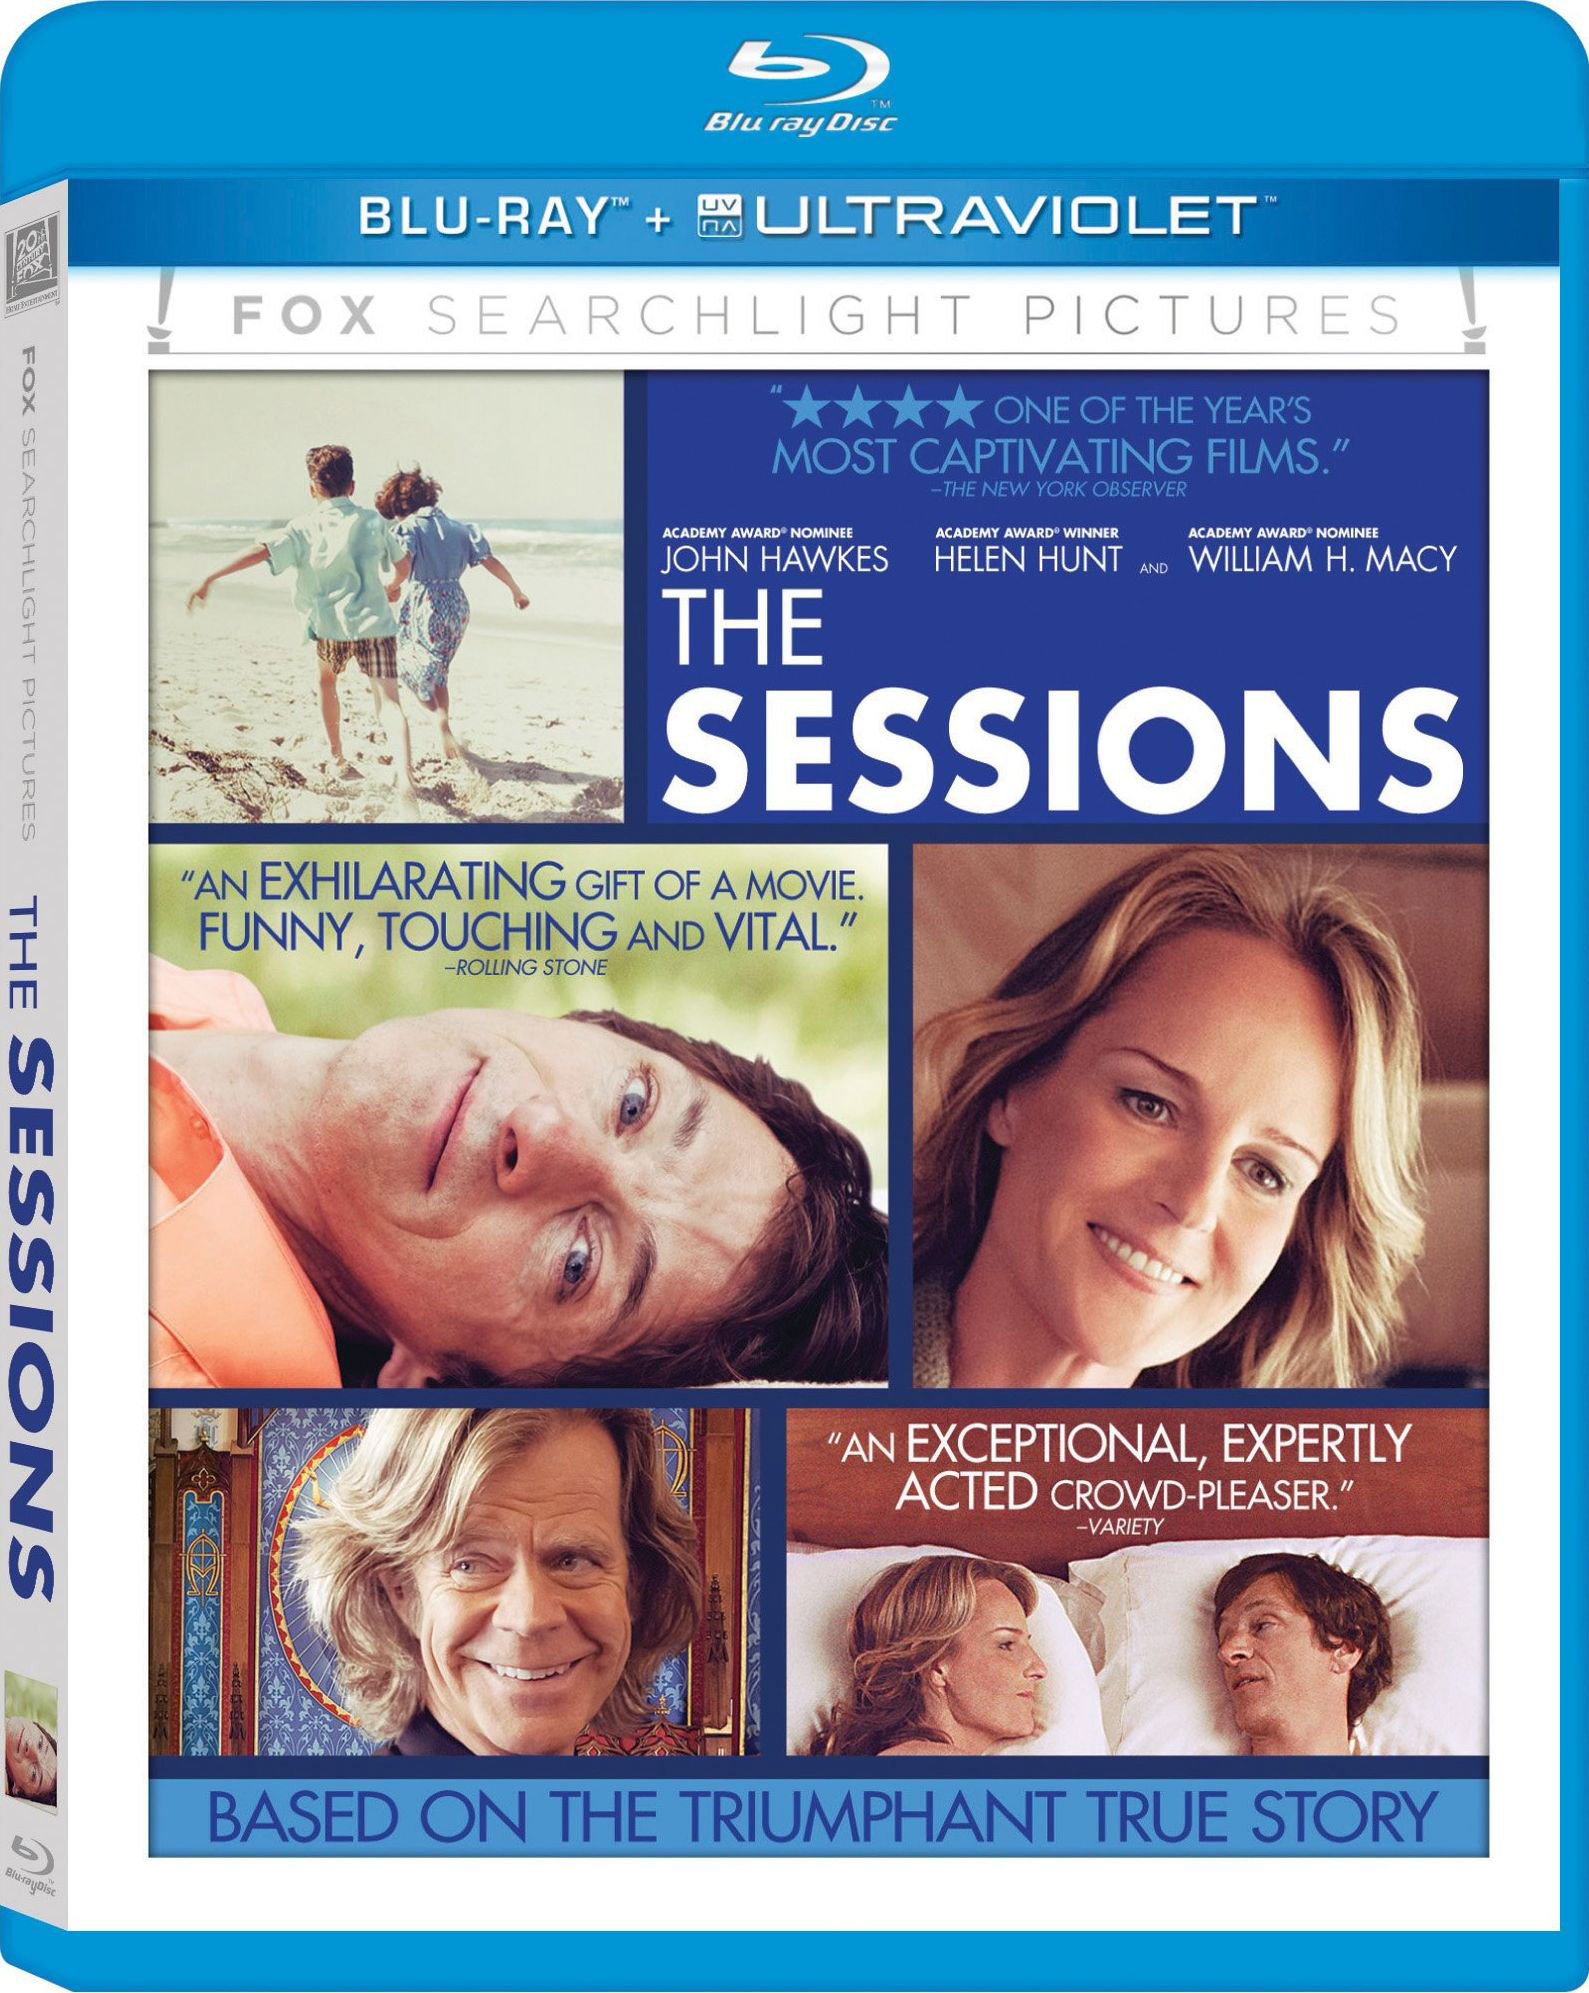 The Sessions - Blu-ray + UltraViolet / Widescreen 36C-G30-FOXBR2283166